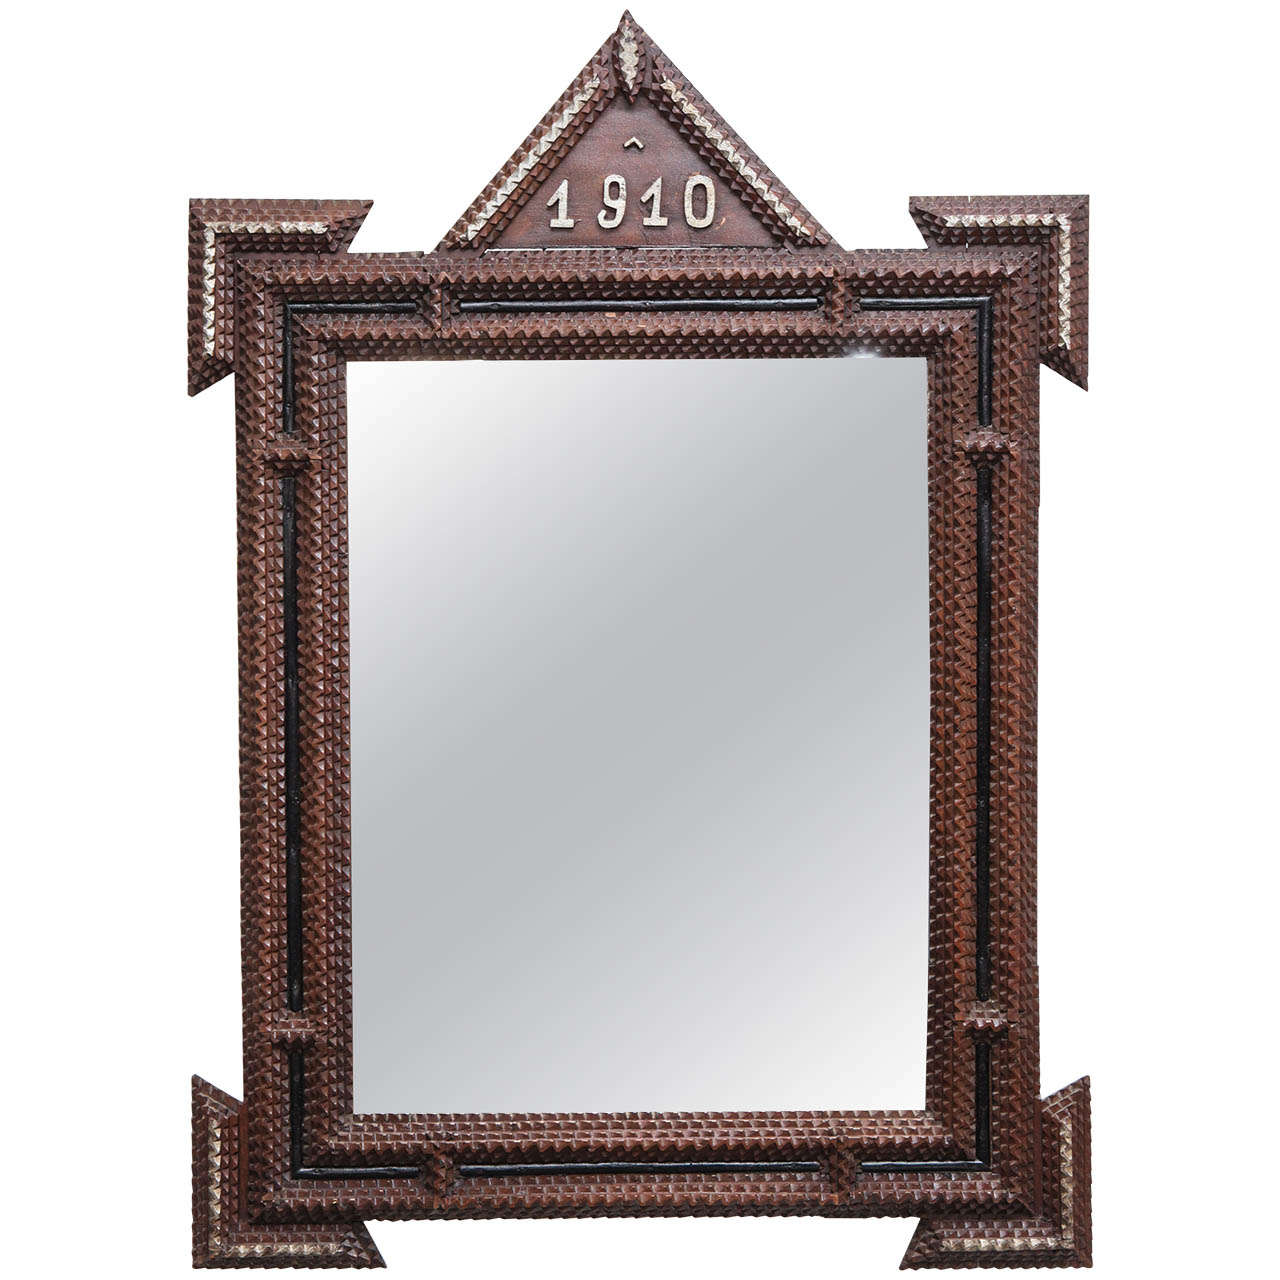 Pair of Tramp Art Mirrors, 1910 For Sale at 1stdibs